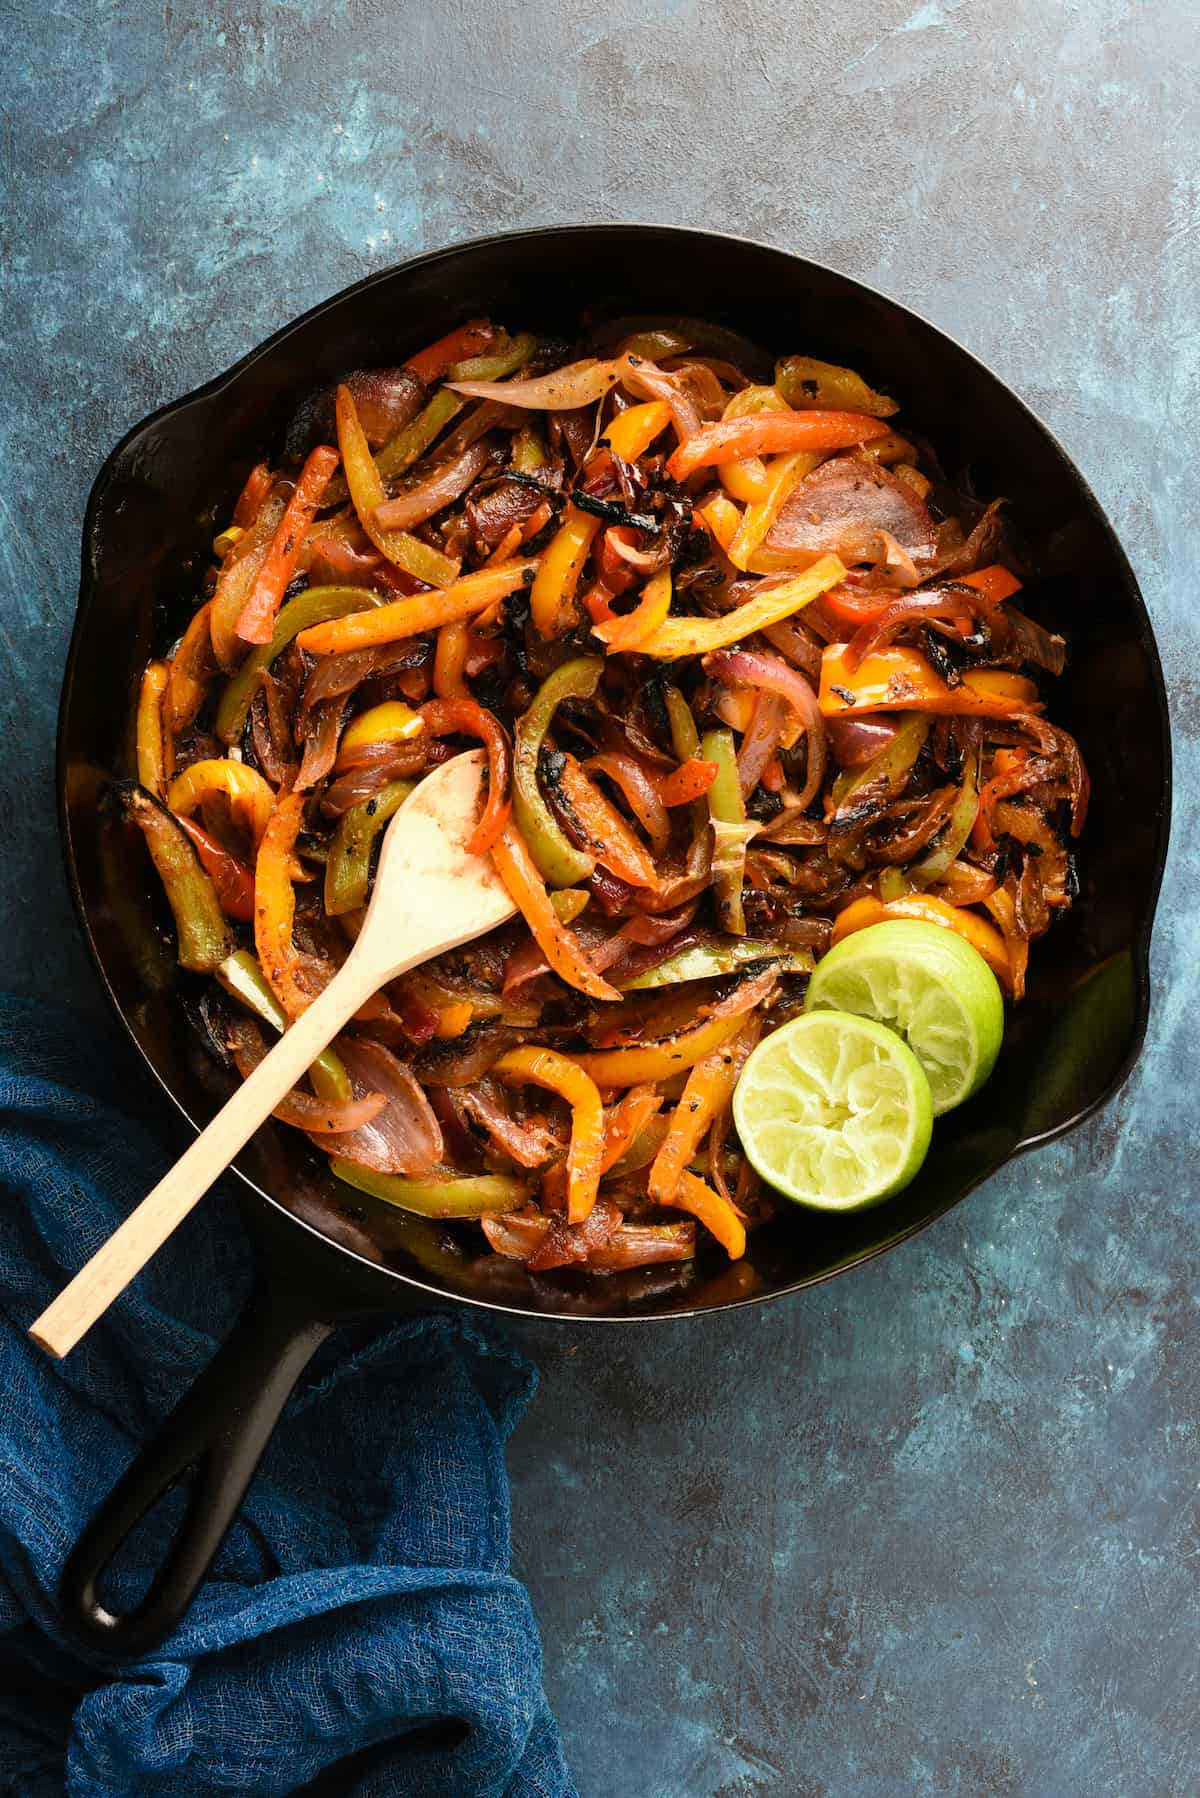 Cast iron skillet filled with cooked fajita veggies, with wooden spoon and lime halves.